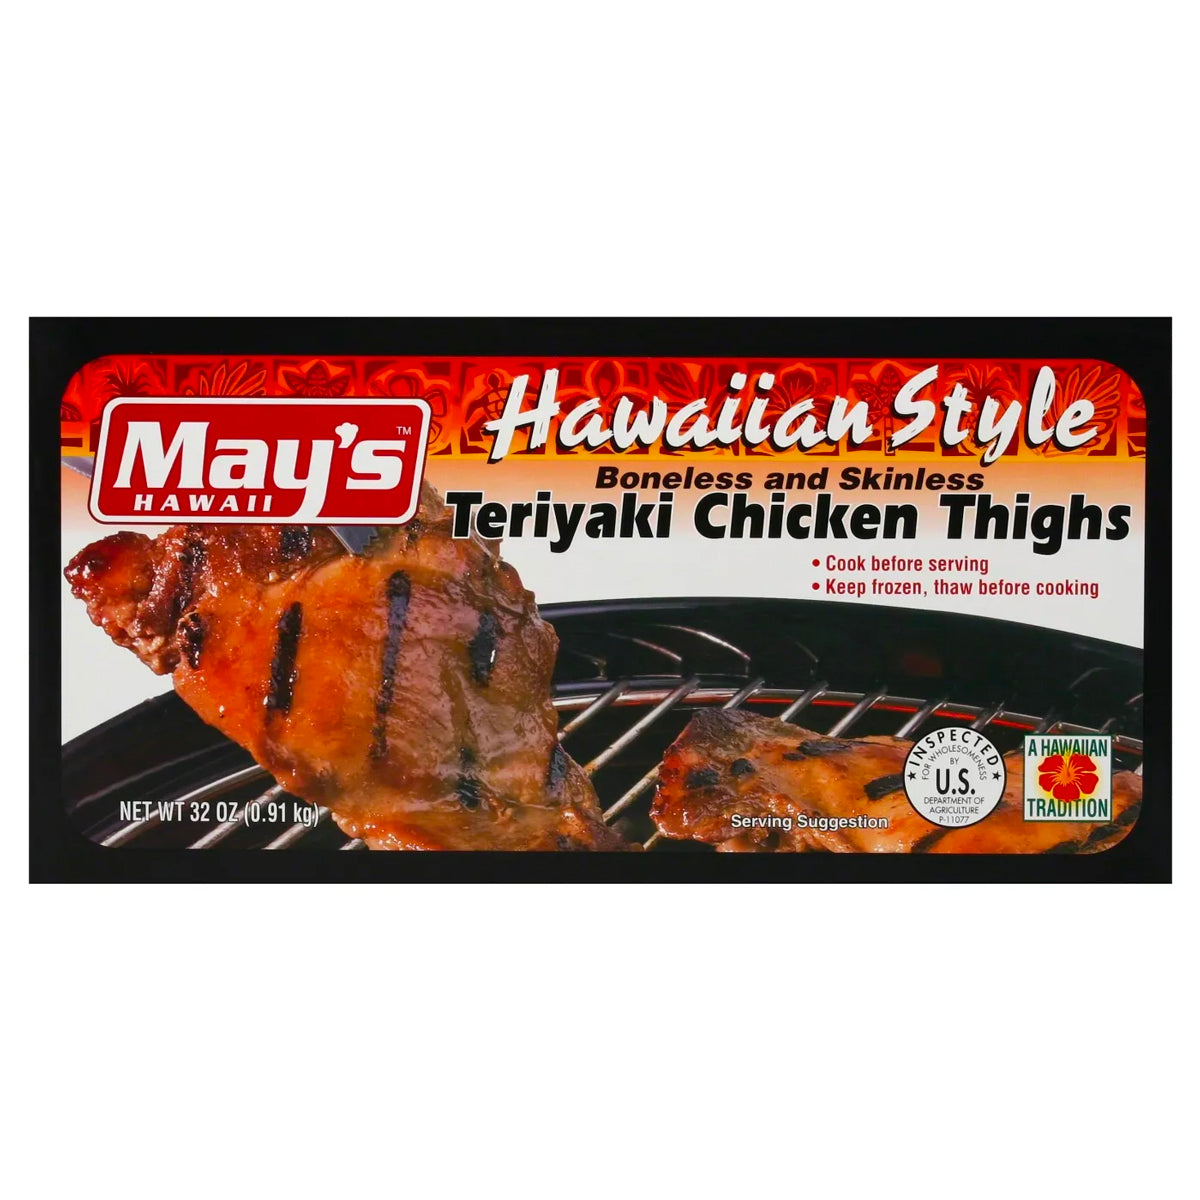 May's Hawaiian Style Boneless and Skinless Teriyaki Chicken Thighs (2lbs)